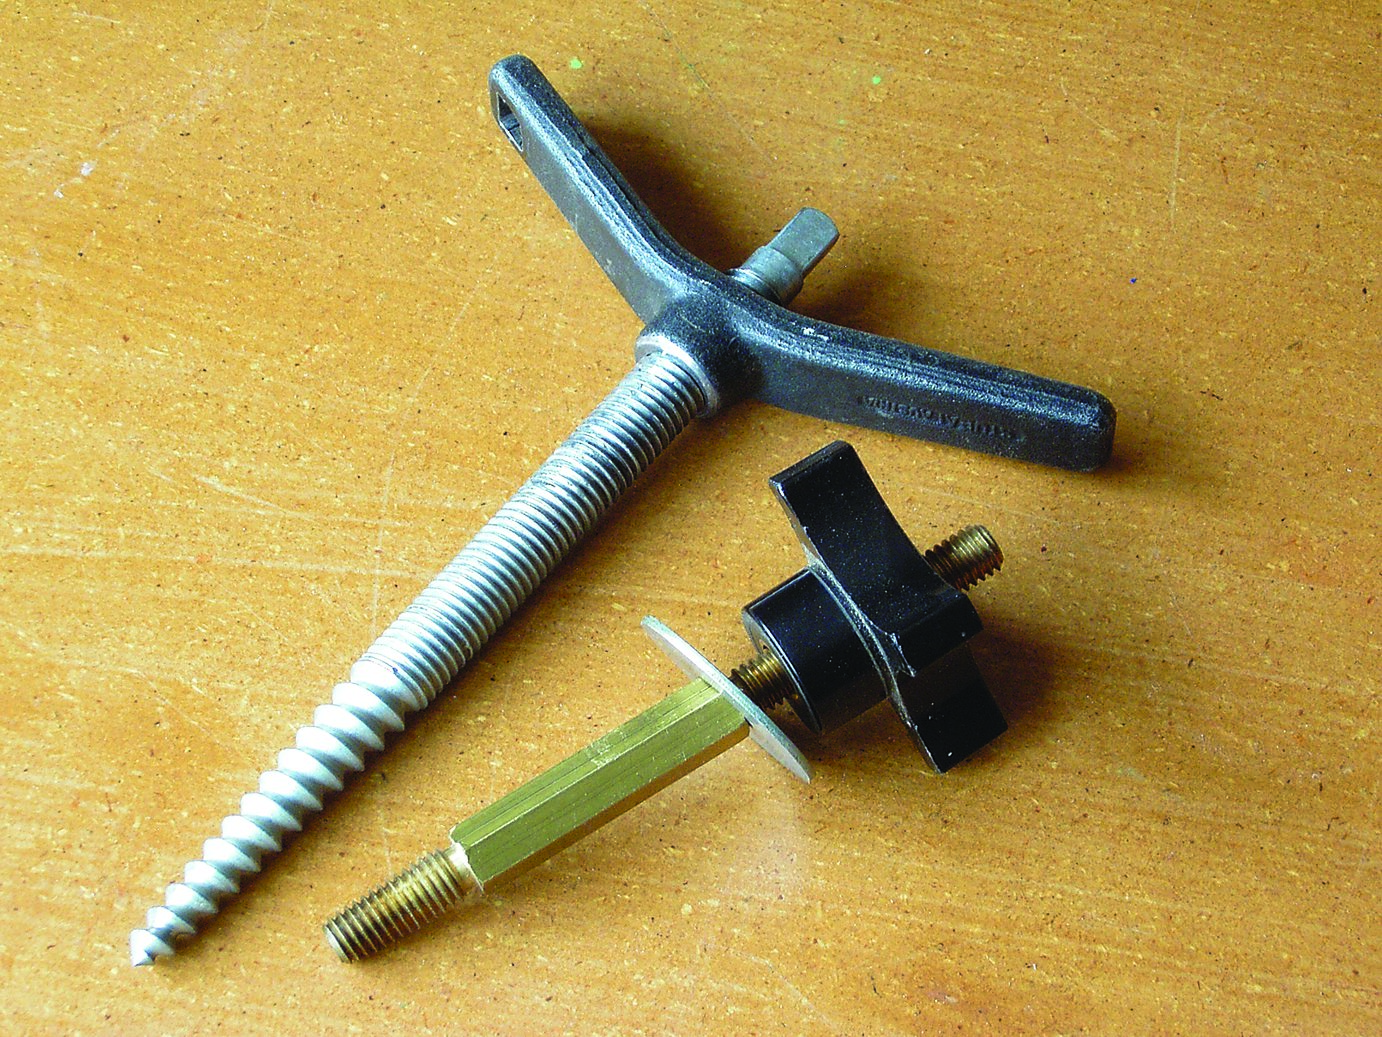 Woodcarver's screws: the larger one by Stubai and the smaller by Veritas.